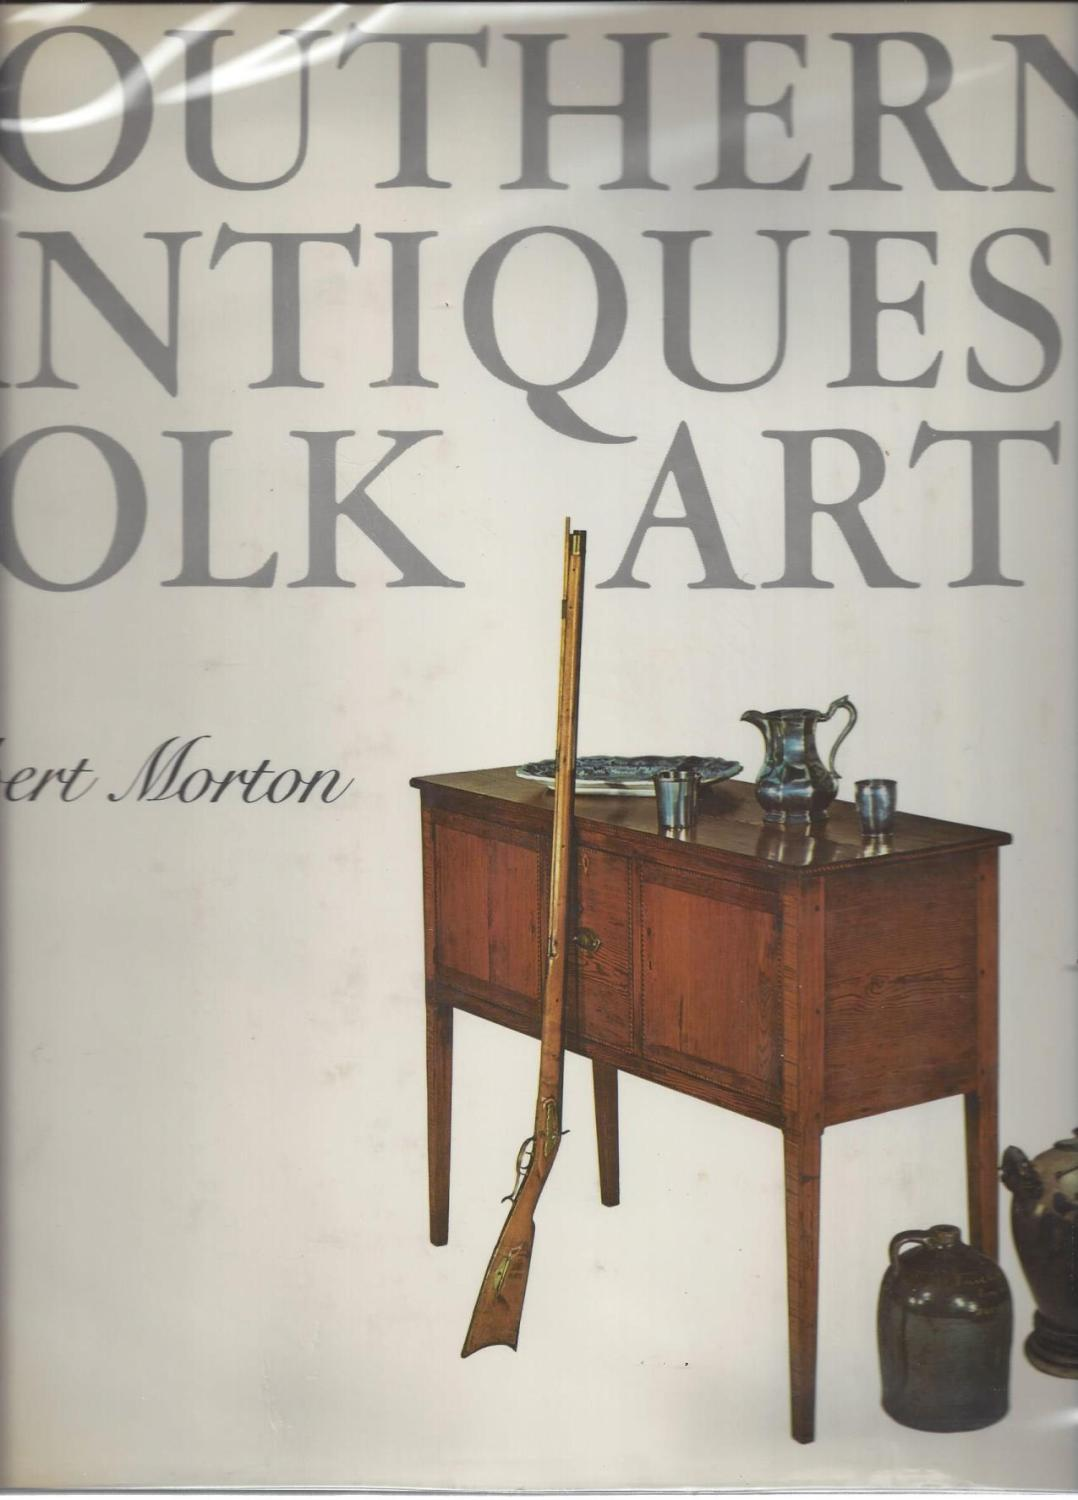 Southern Antiques & Folk Art, Robert Morton; Ladislav Svatos [Designer]